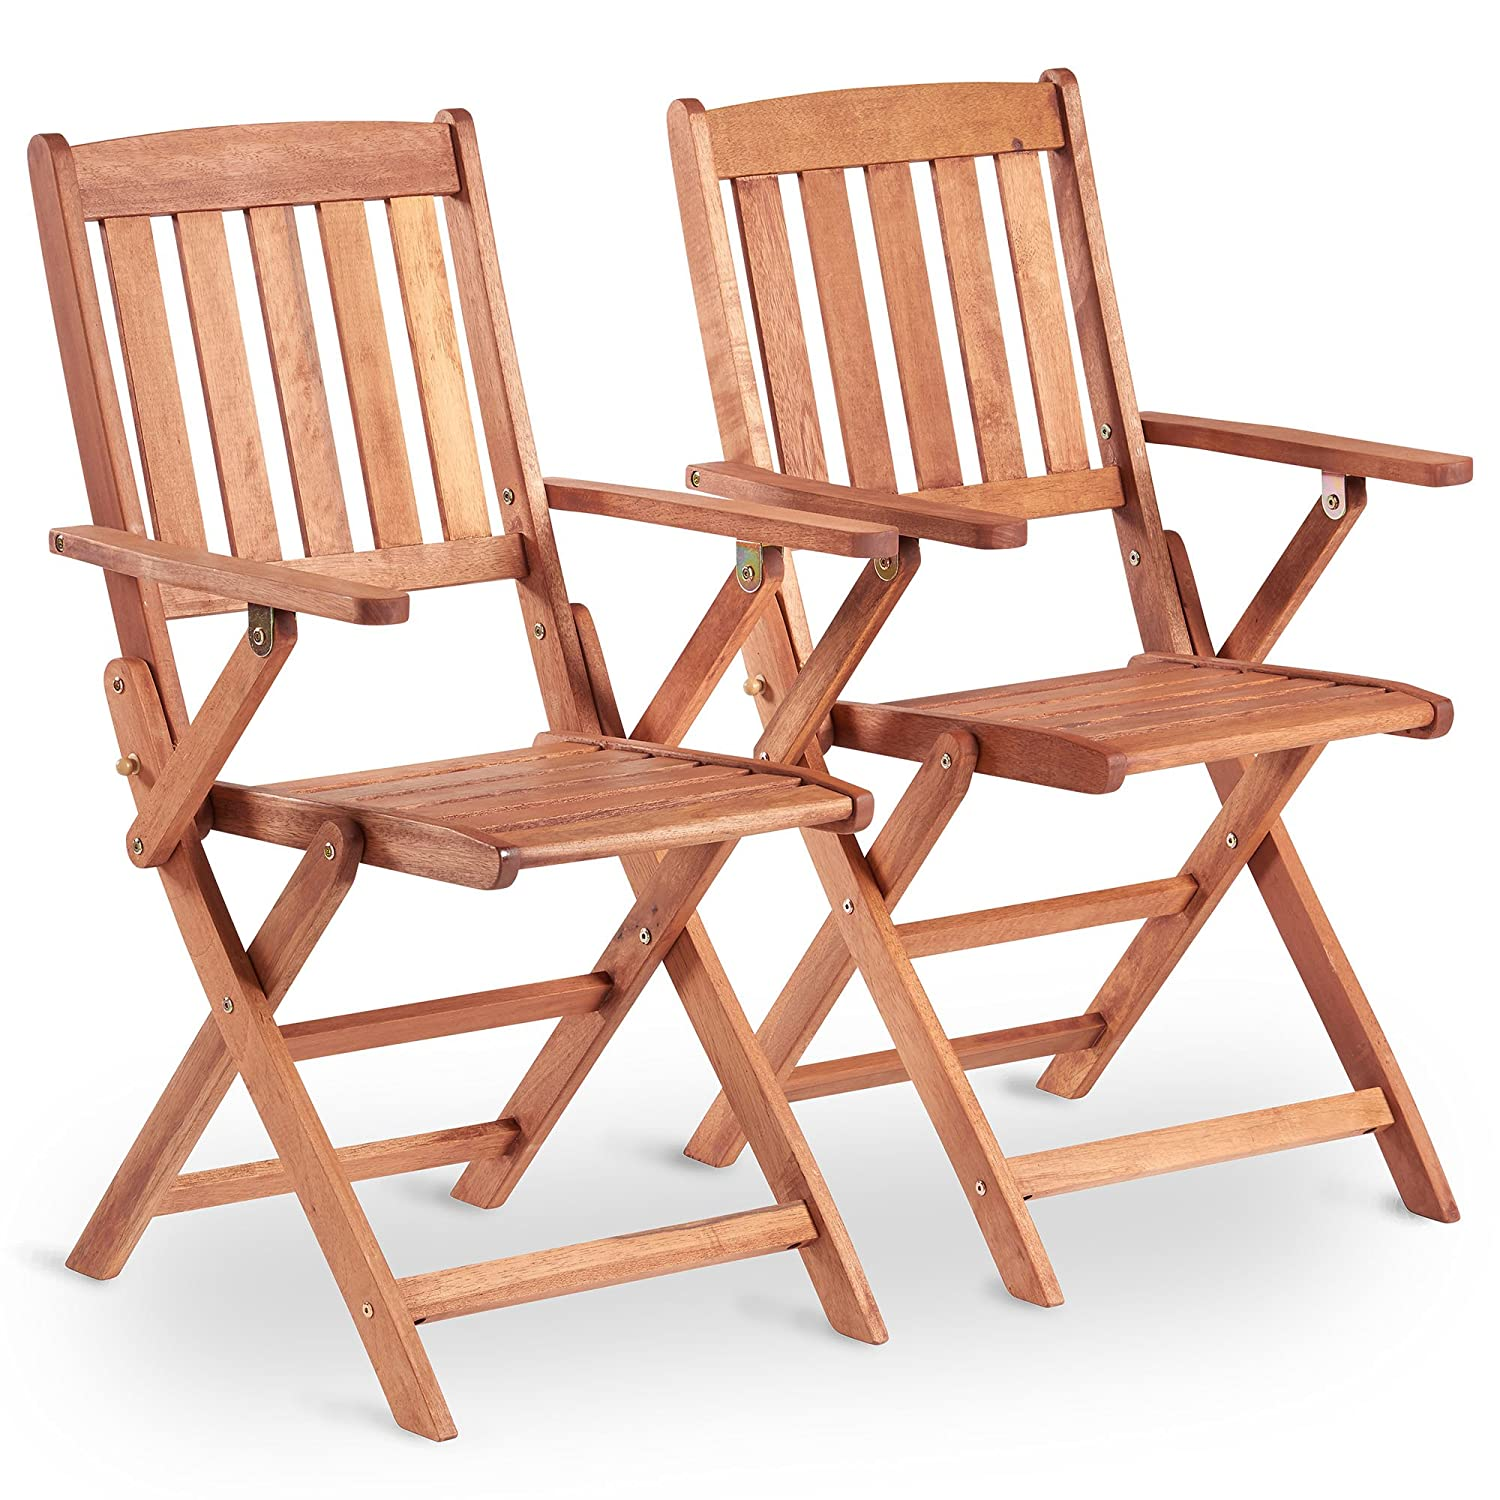 VonHaus 2 Pack Wooden Folding Chairs Set of 2 Armchairs Made